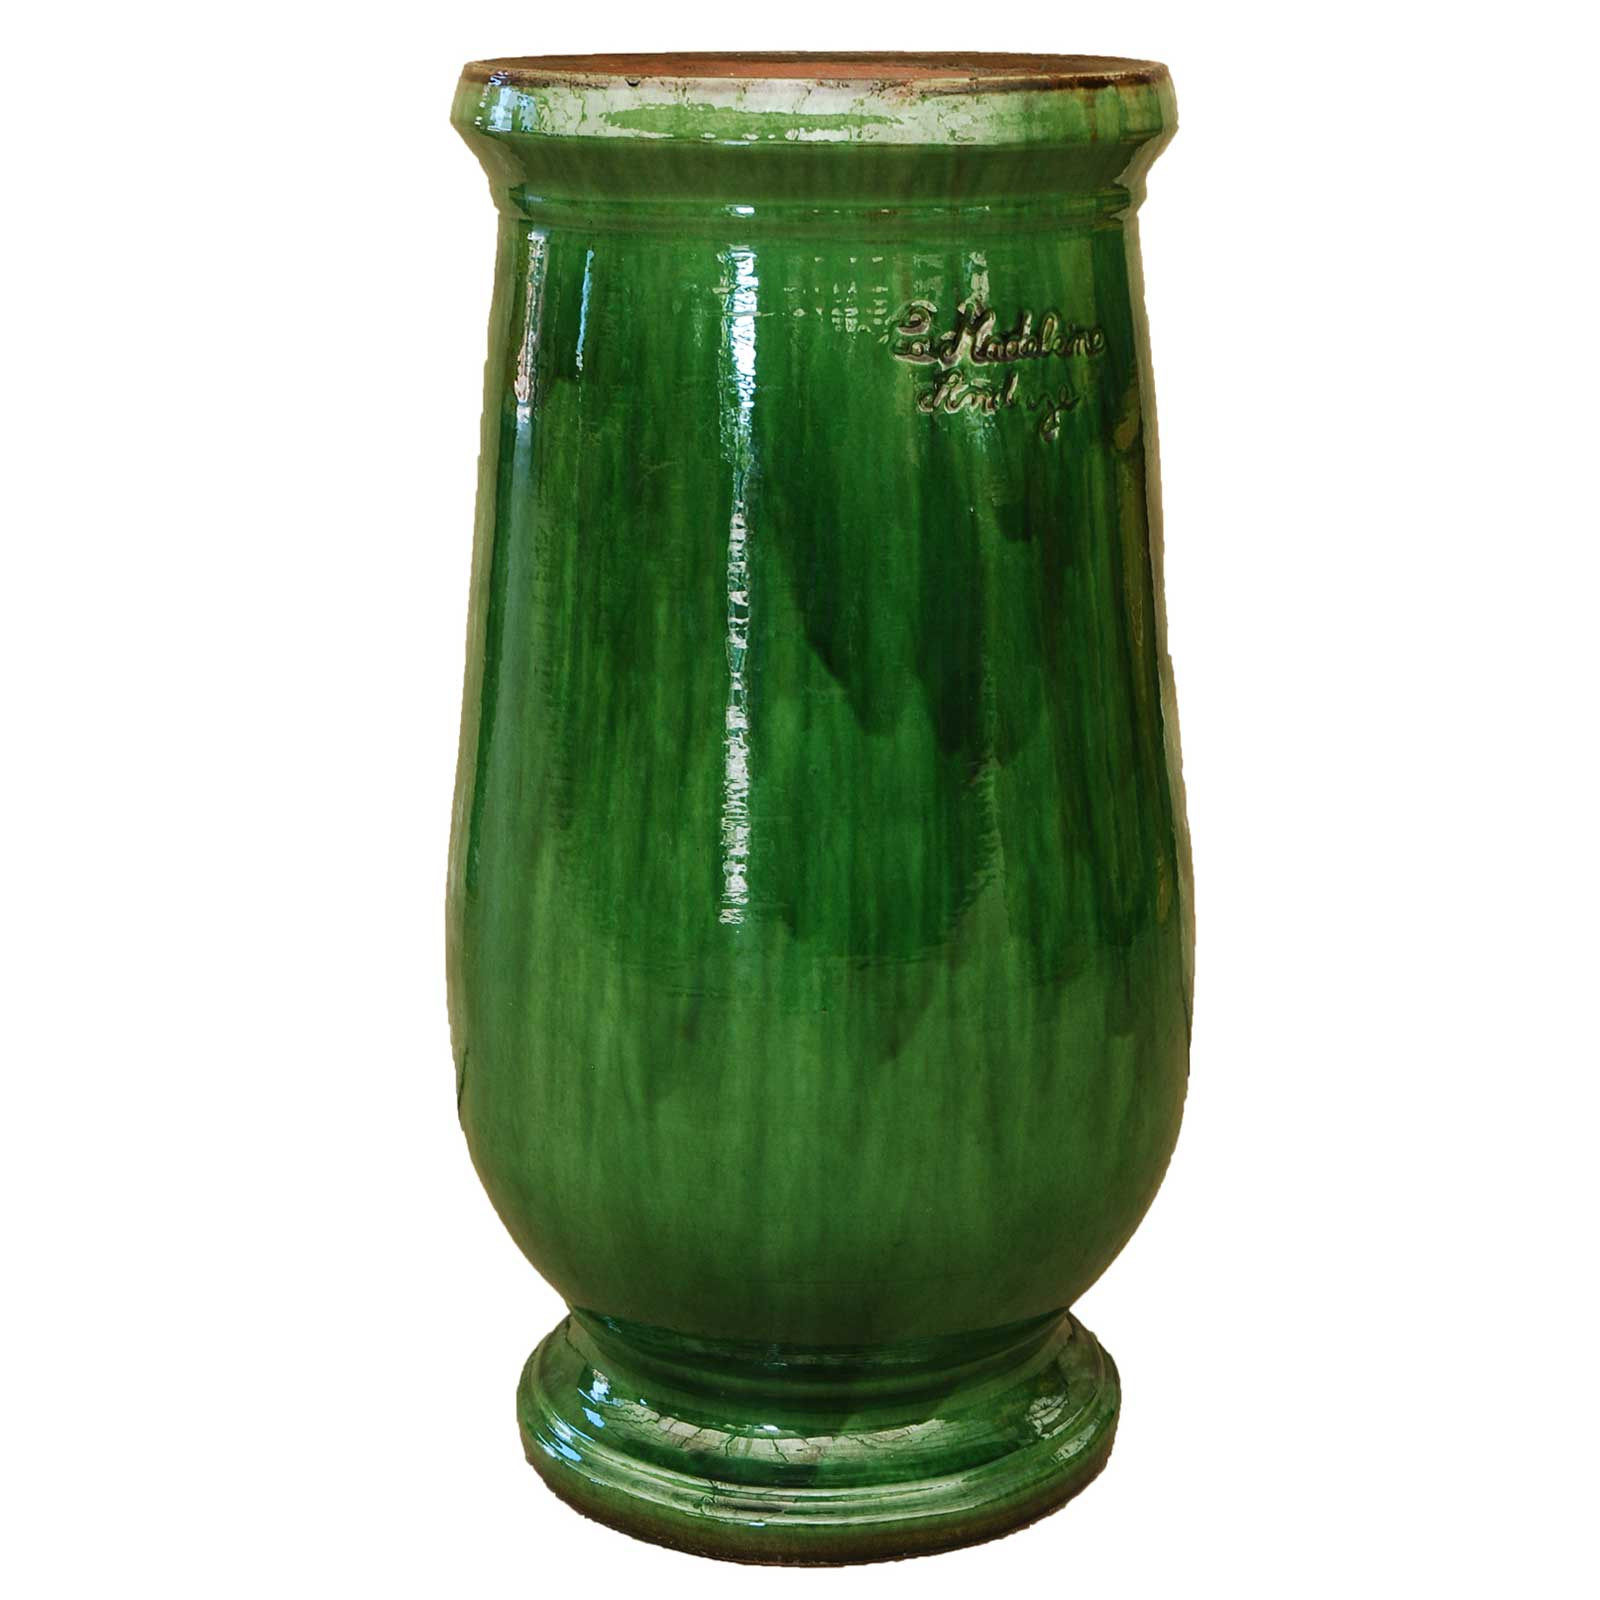 Anduze Jar in Green